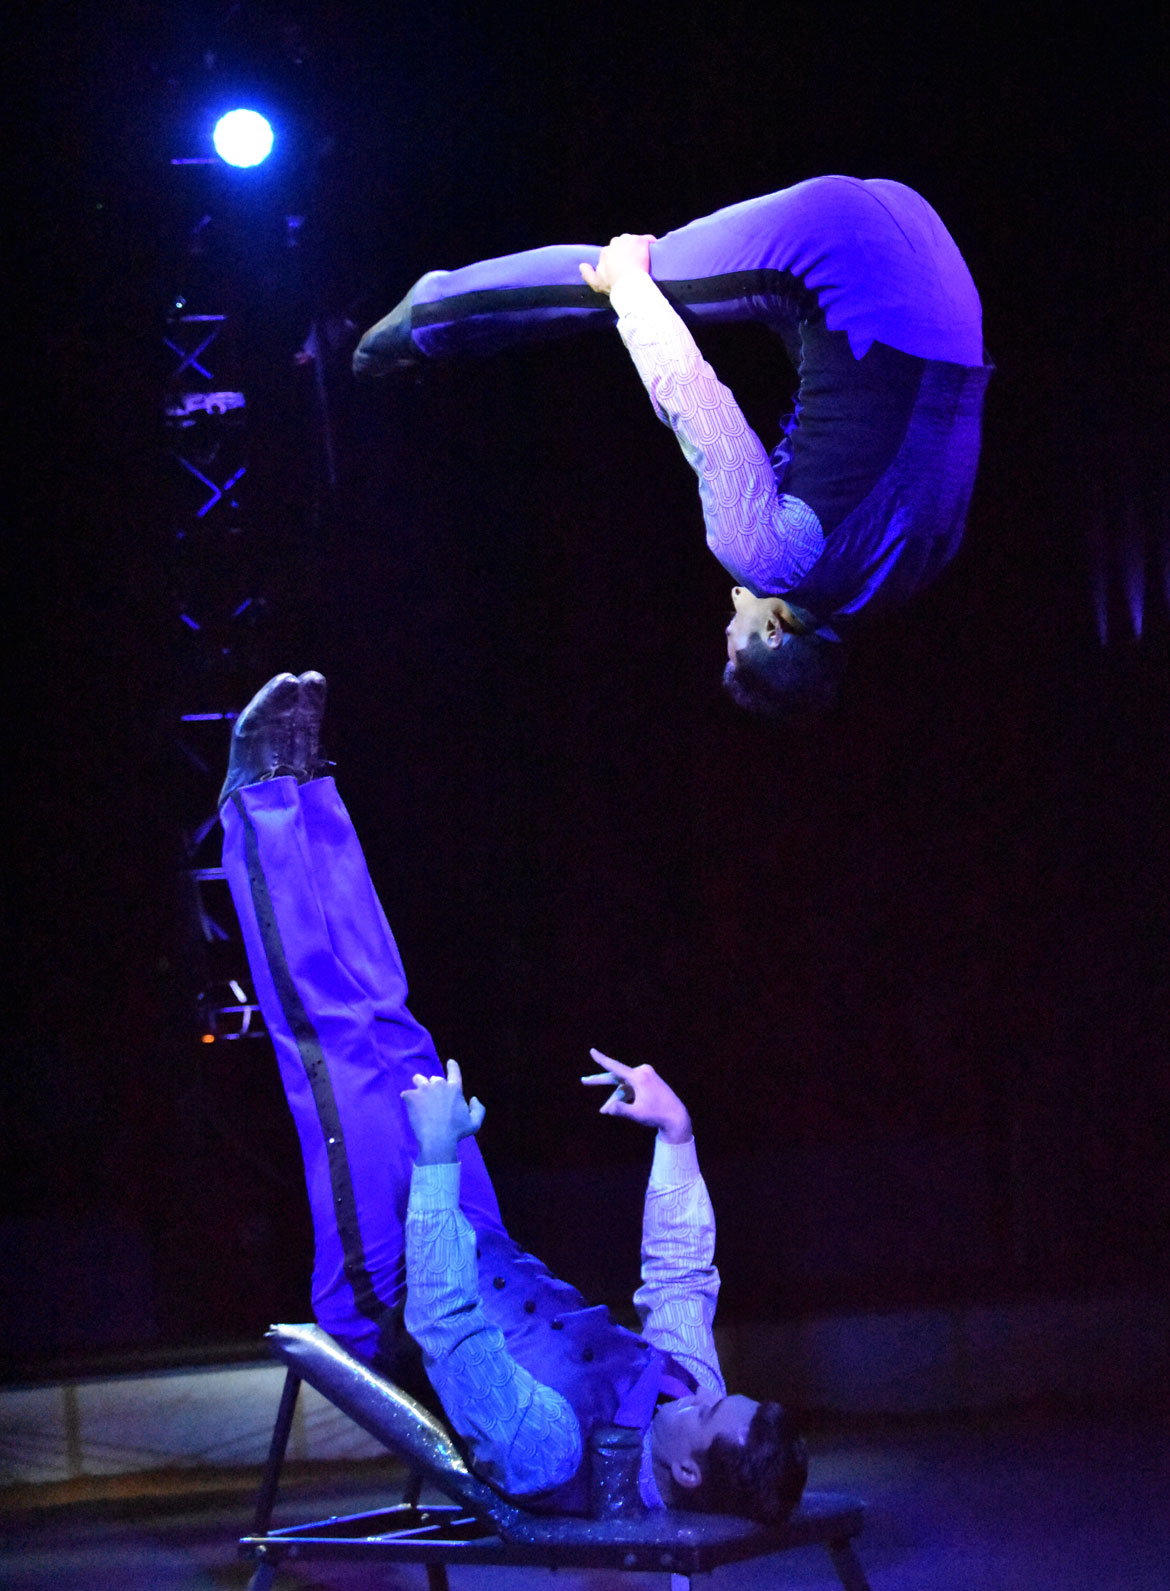 Brothers Guiliano and Fabio Anastasini perform their Risley act—acrobatics in which one seemingly juggles the other with his feet—during the Big Apple Circus. (Greg Cook)